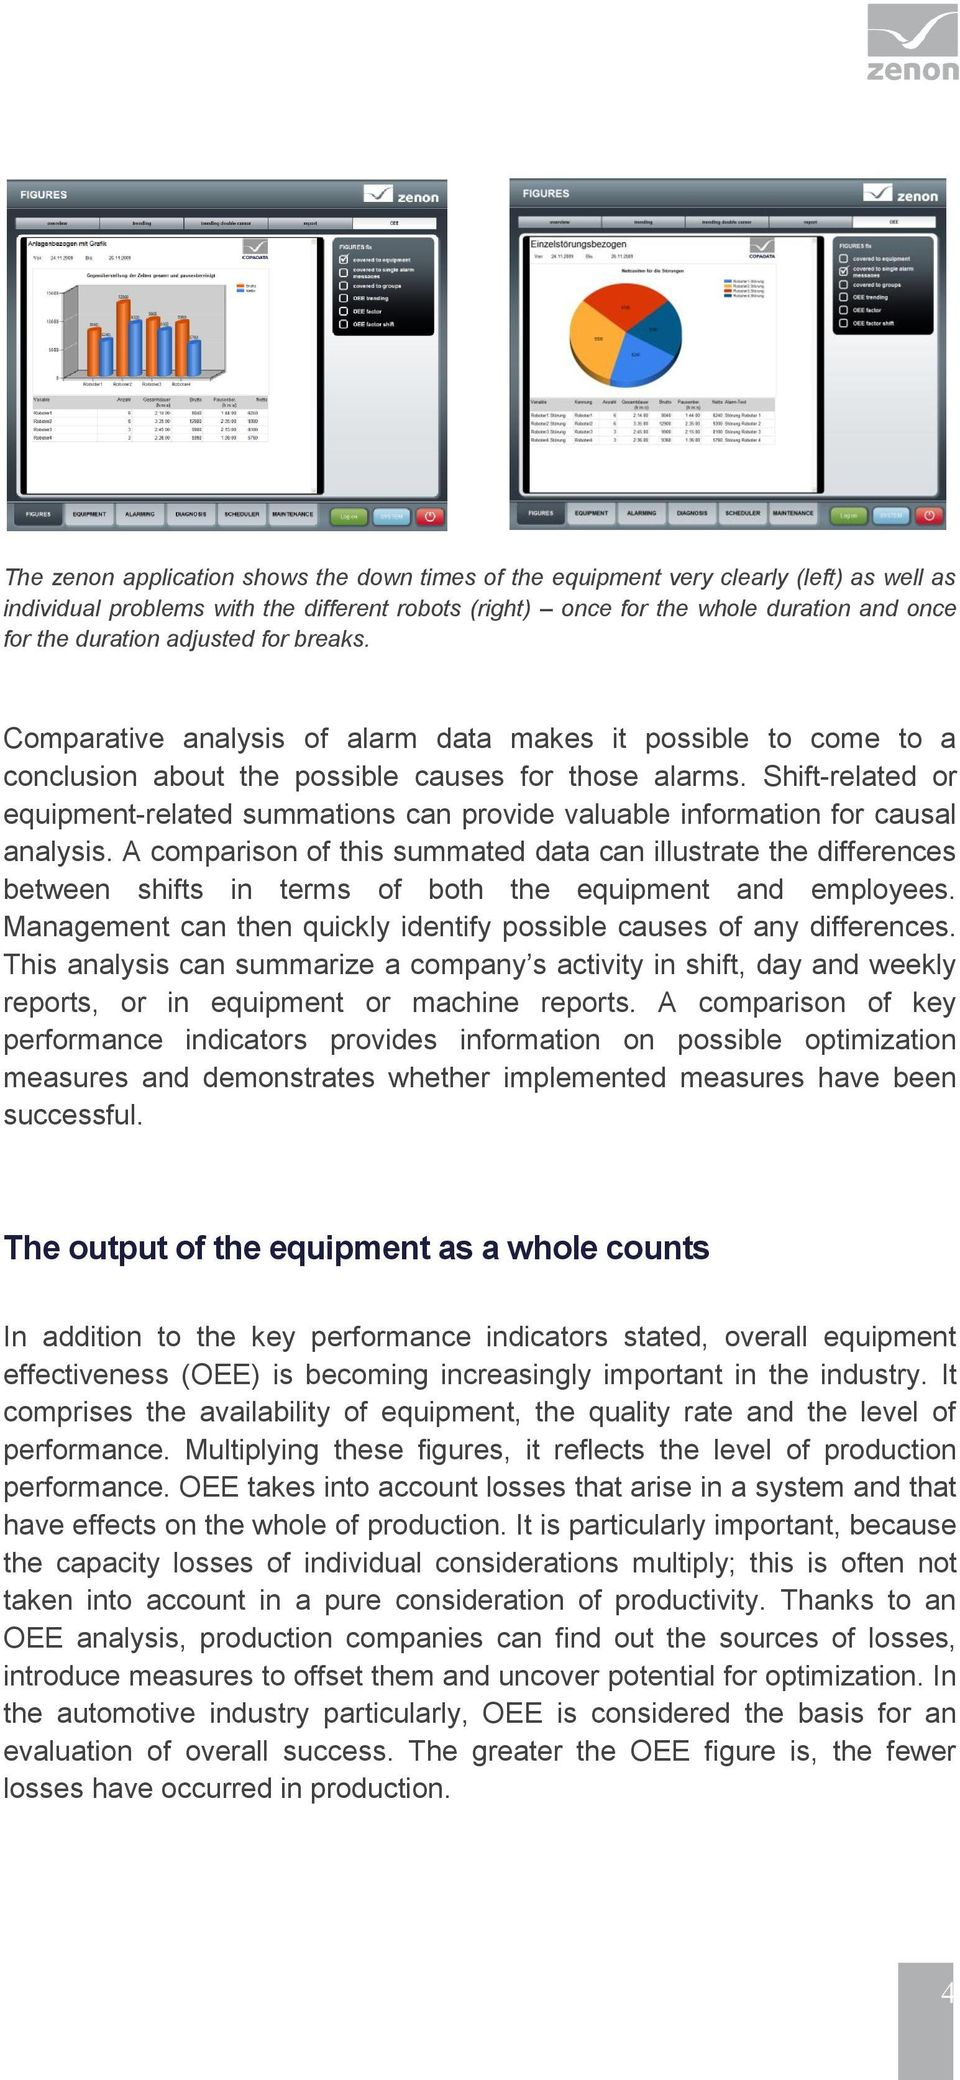 Shift-related or equipment-related summations can provide valuable information for causal analysis.